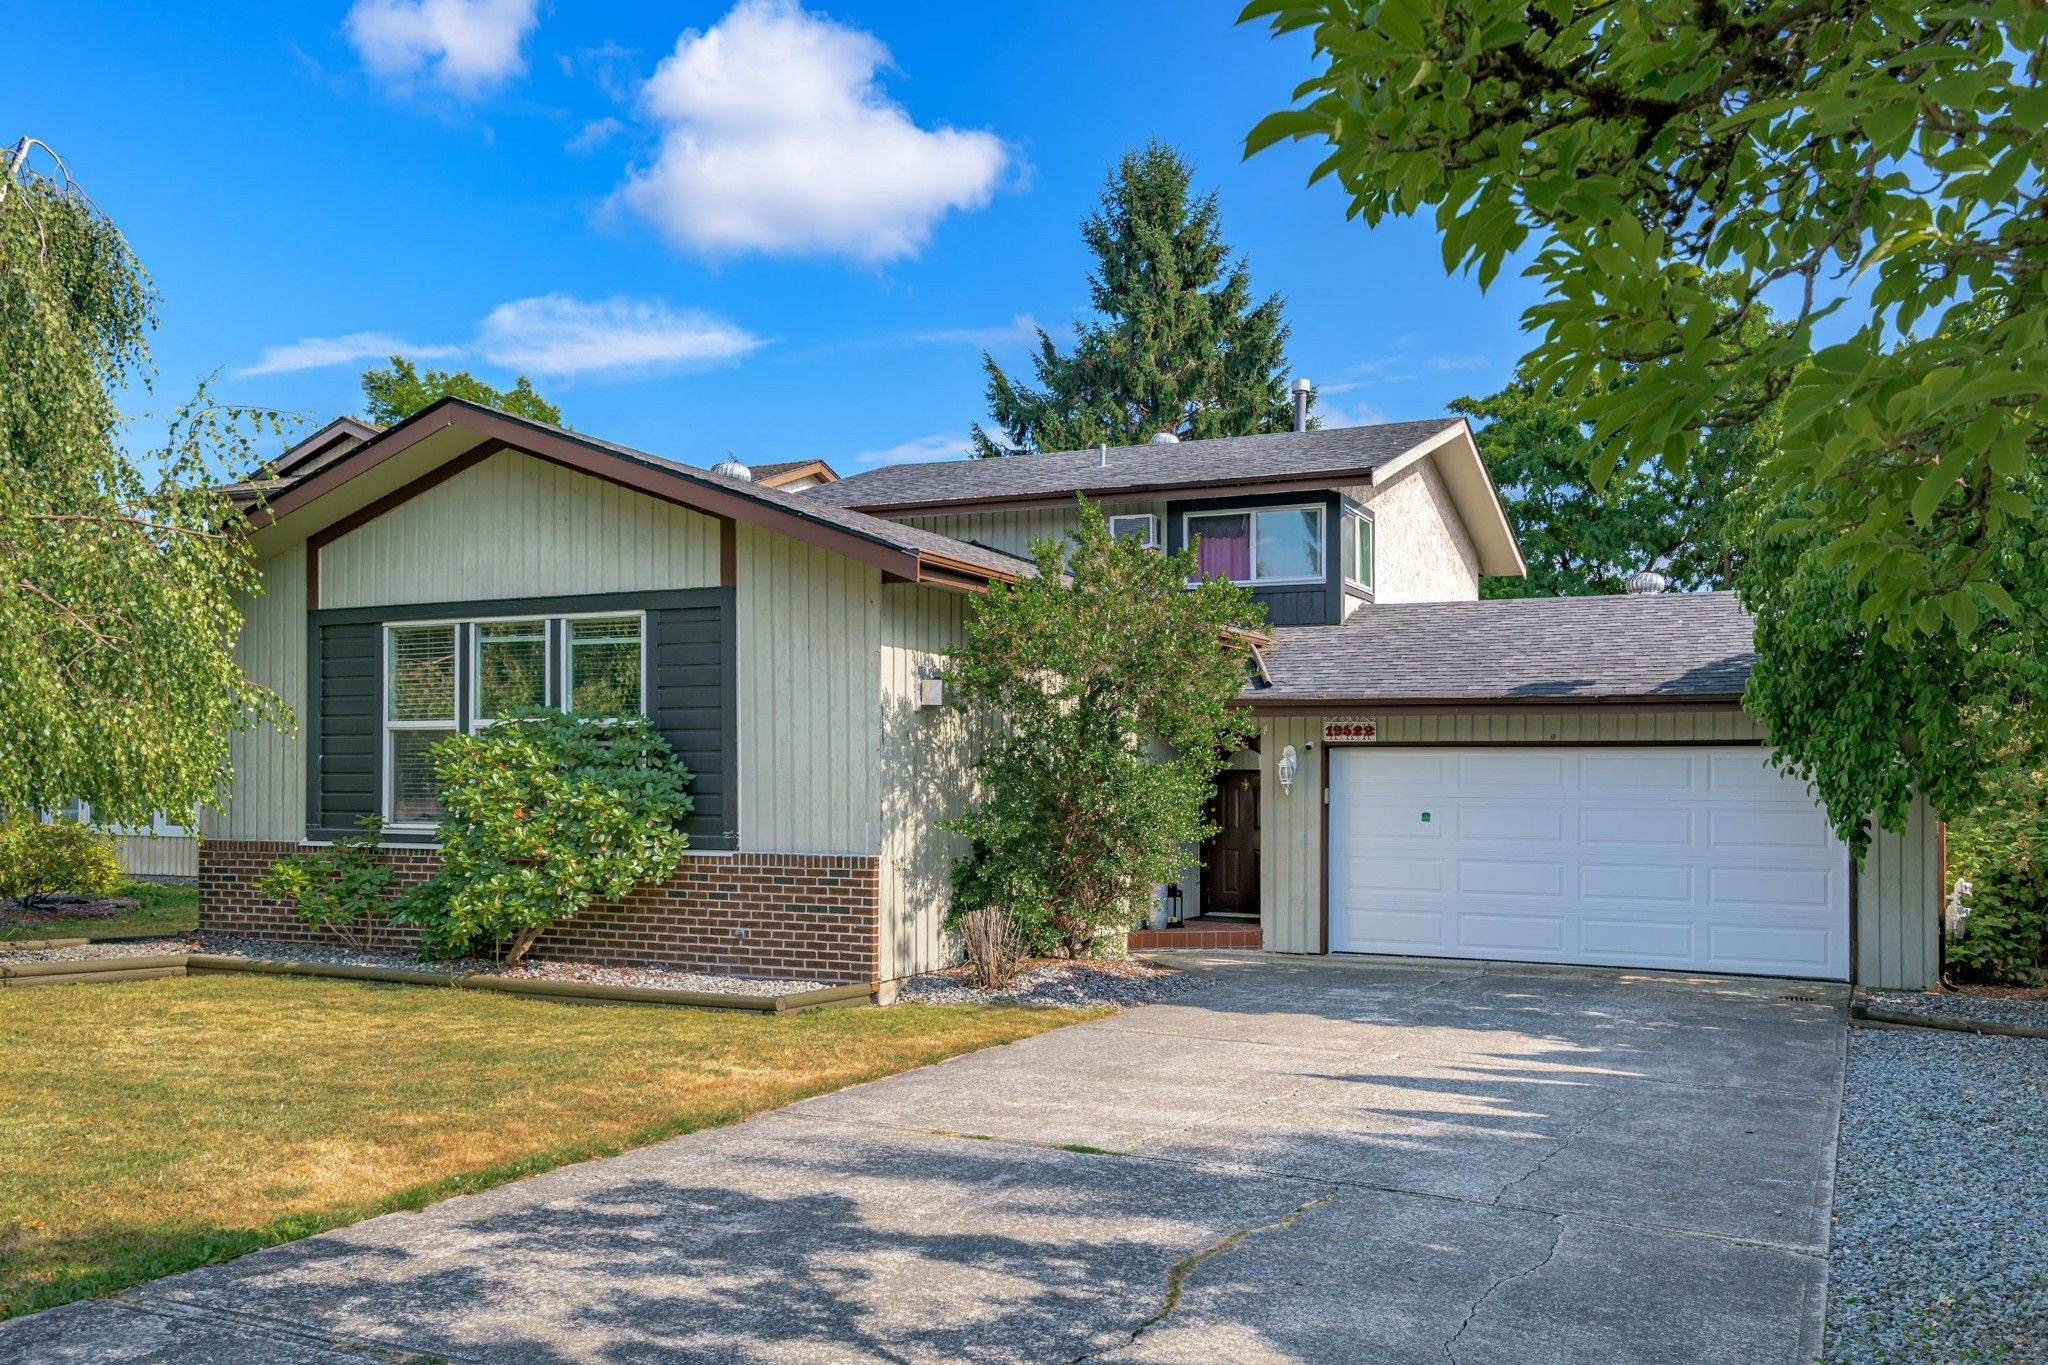 Main Photo: 19522 63 Avenue in Surrey: Clayton House for sale (Cloverdale)  : MLS®# R2600110